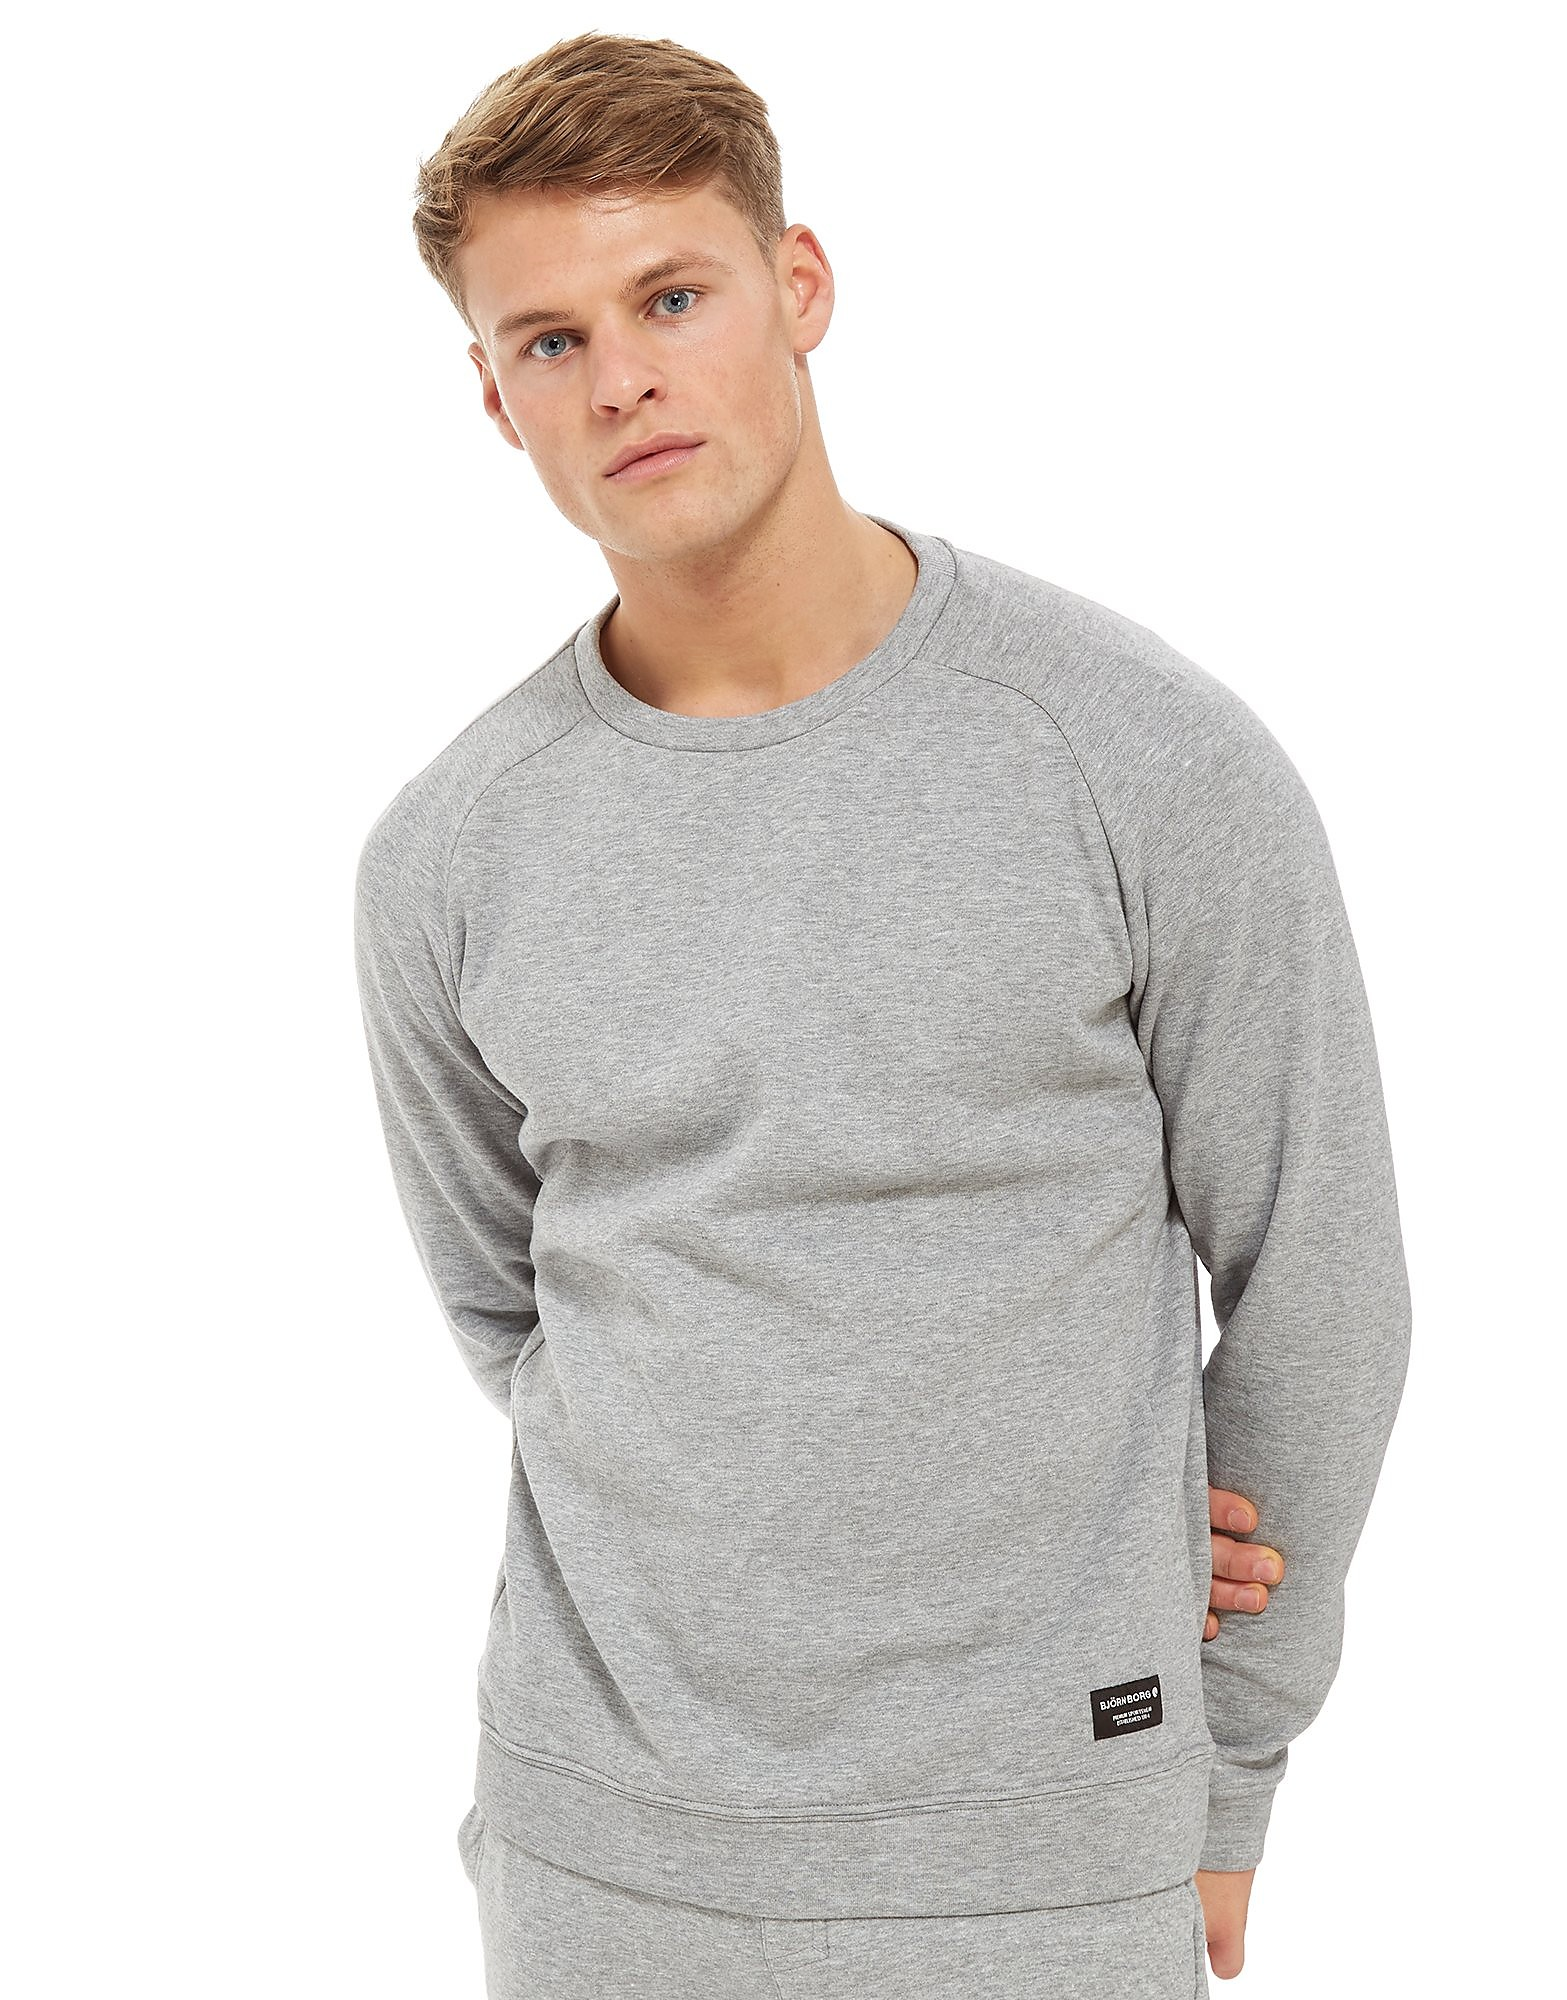 Bjorn Borg Core Fleece Crew Sweatshirt